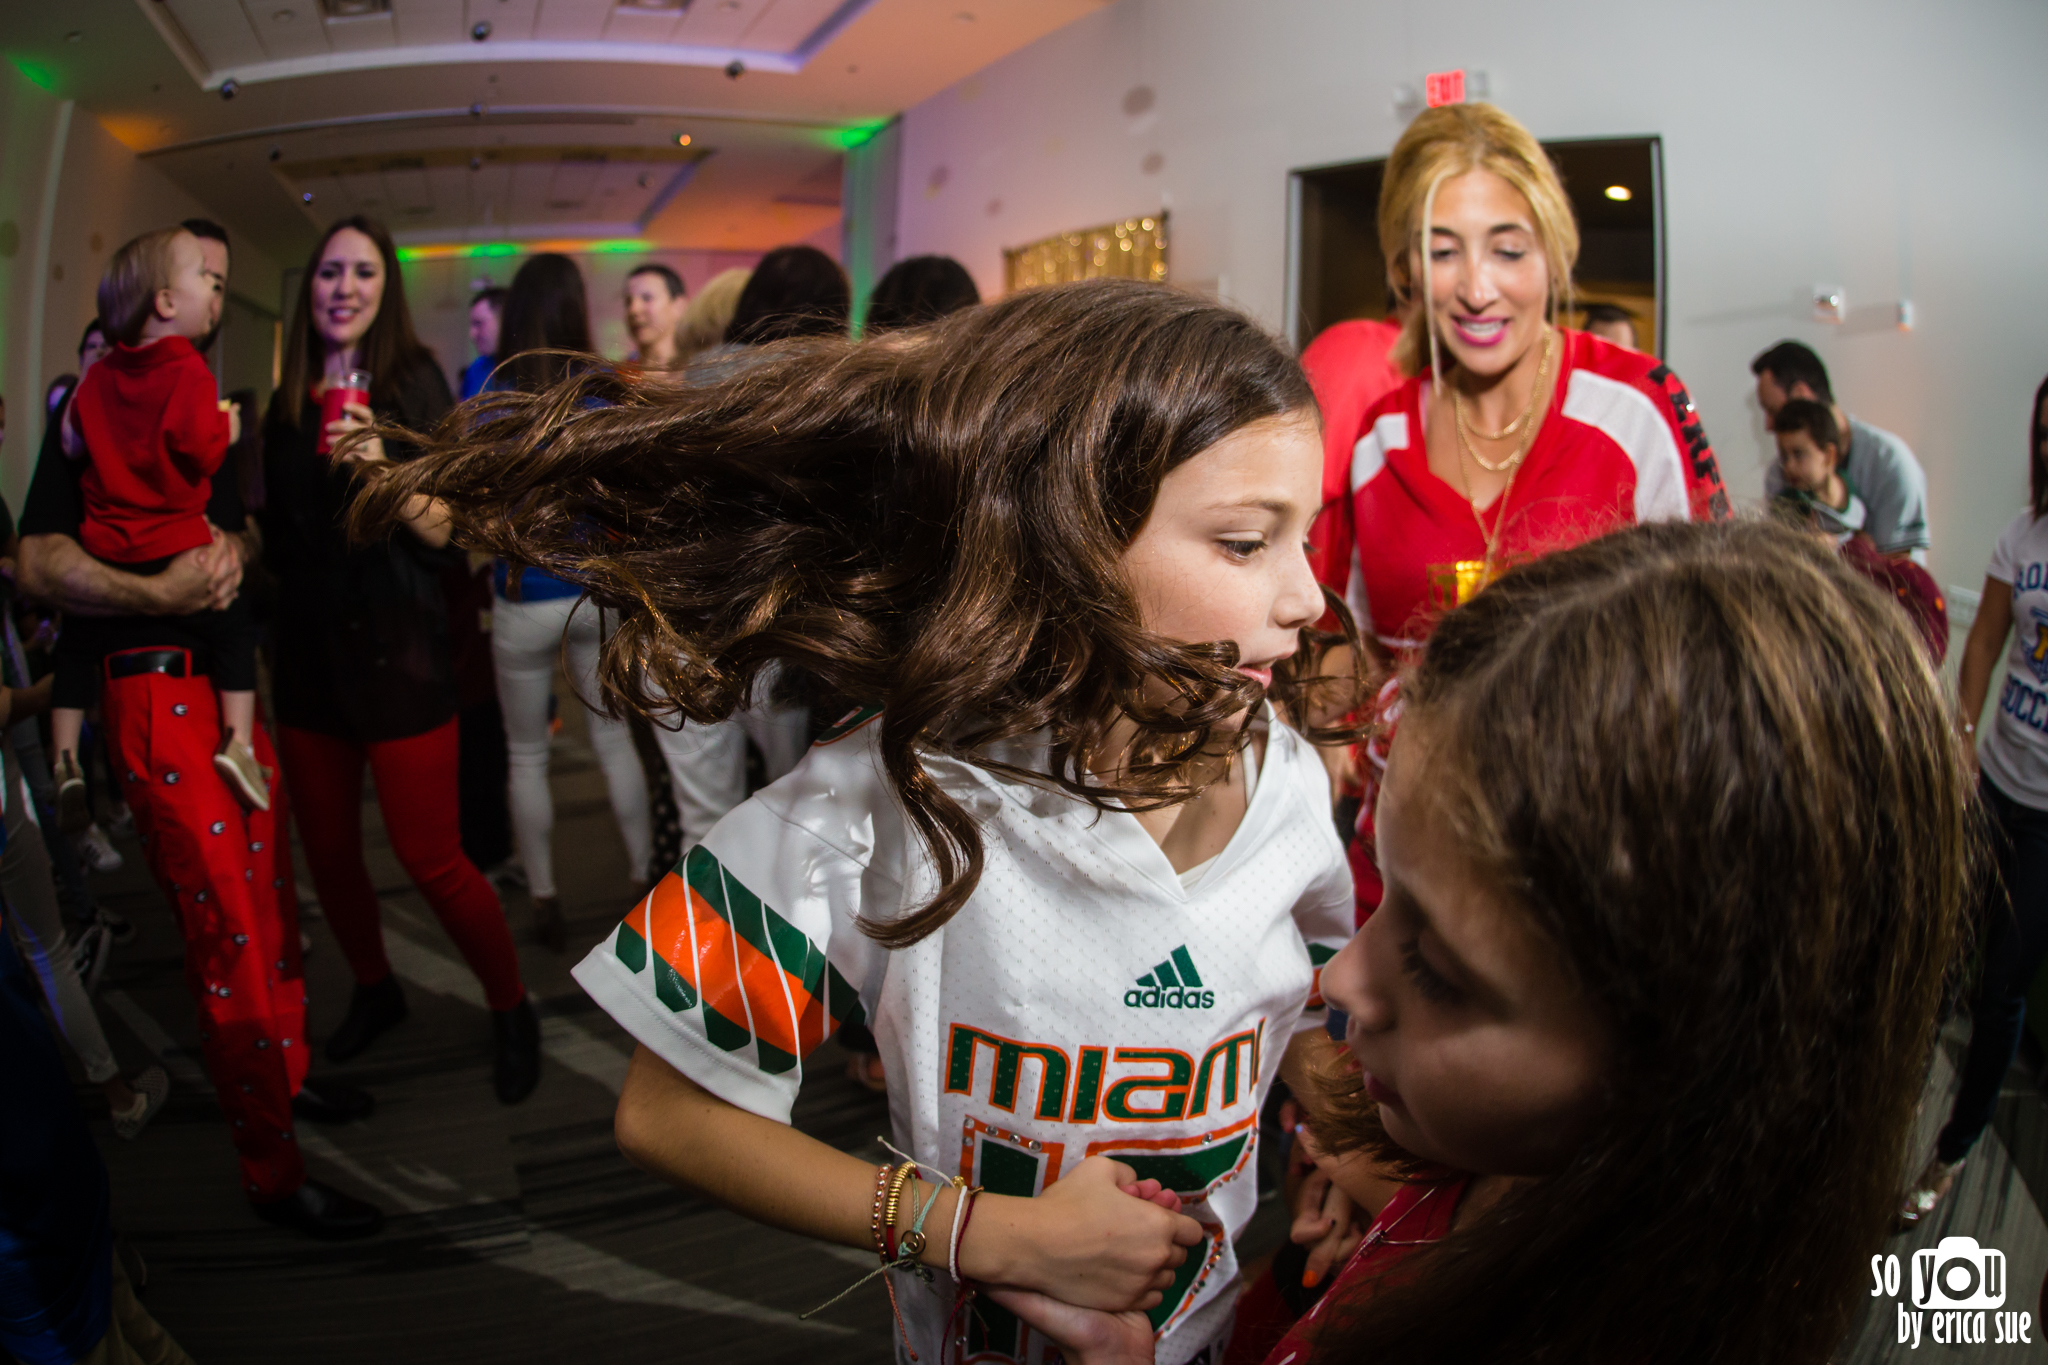 so-you-by-erica-sue-mitzvah-photographer-temple-judea-coral-gables-university-of-miami-hillel-7576.jpg